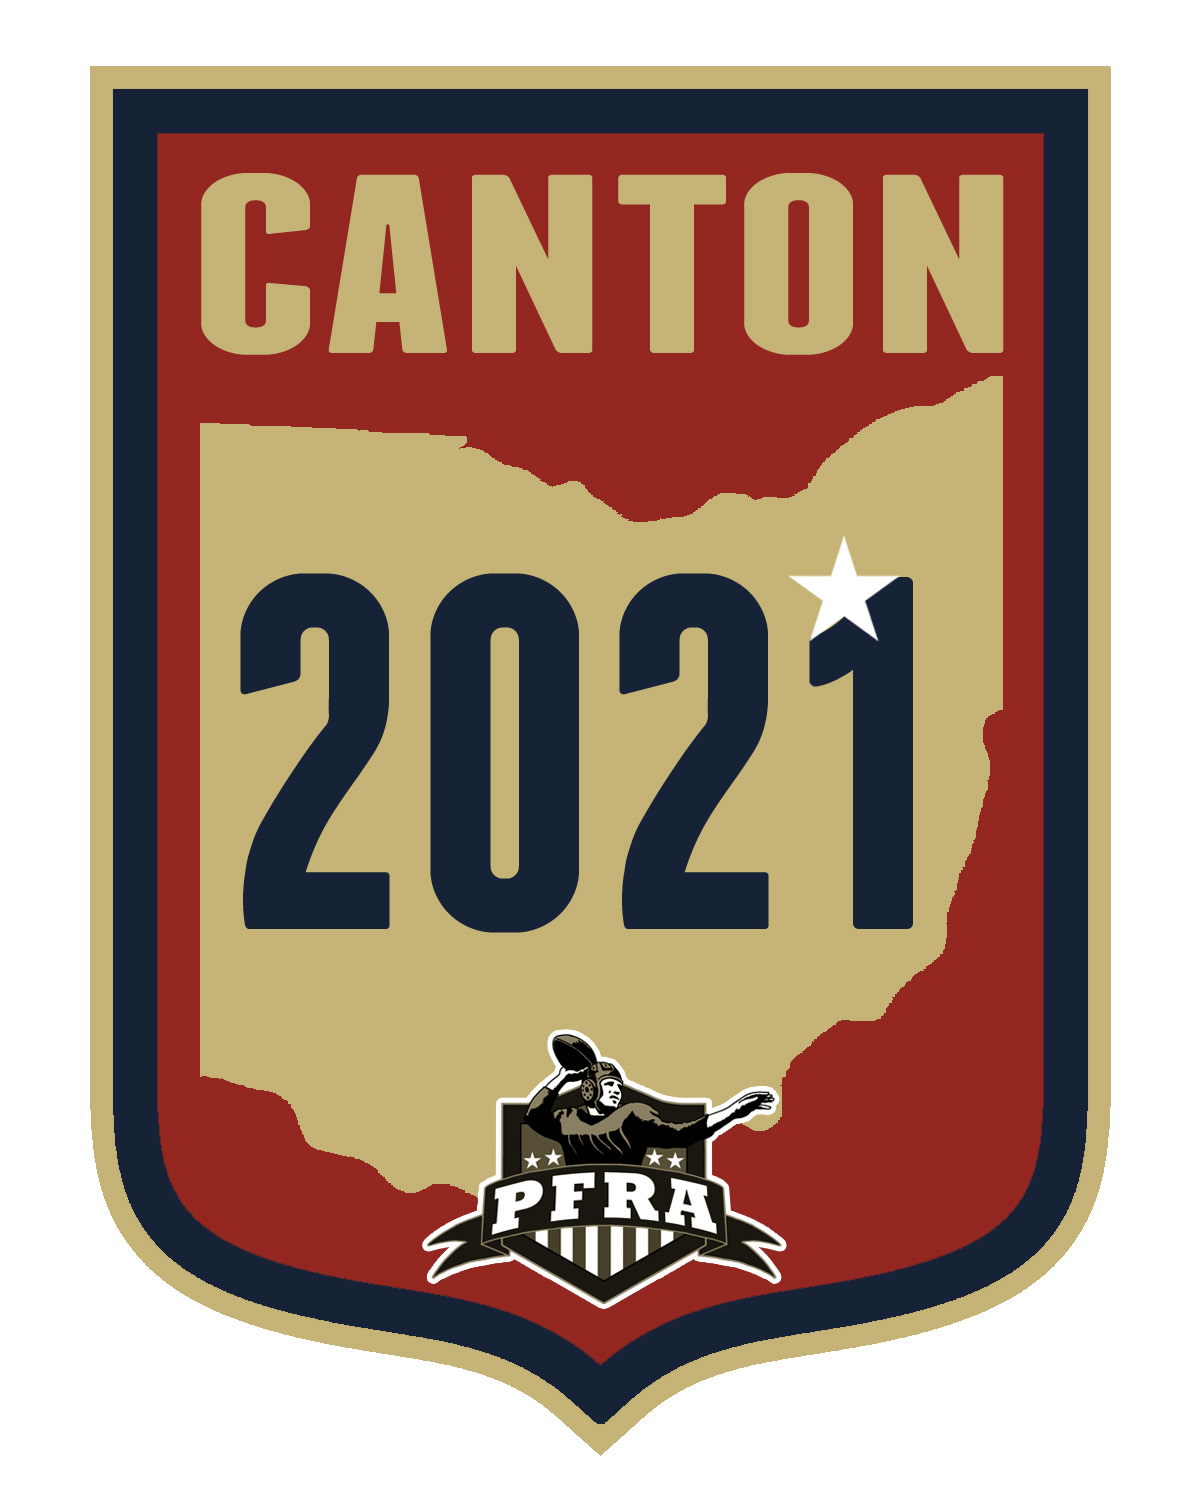 2021 PFRA Convention - Canton